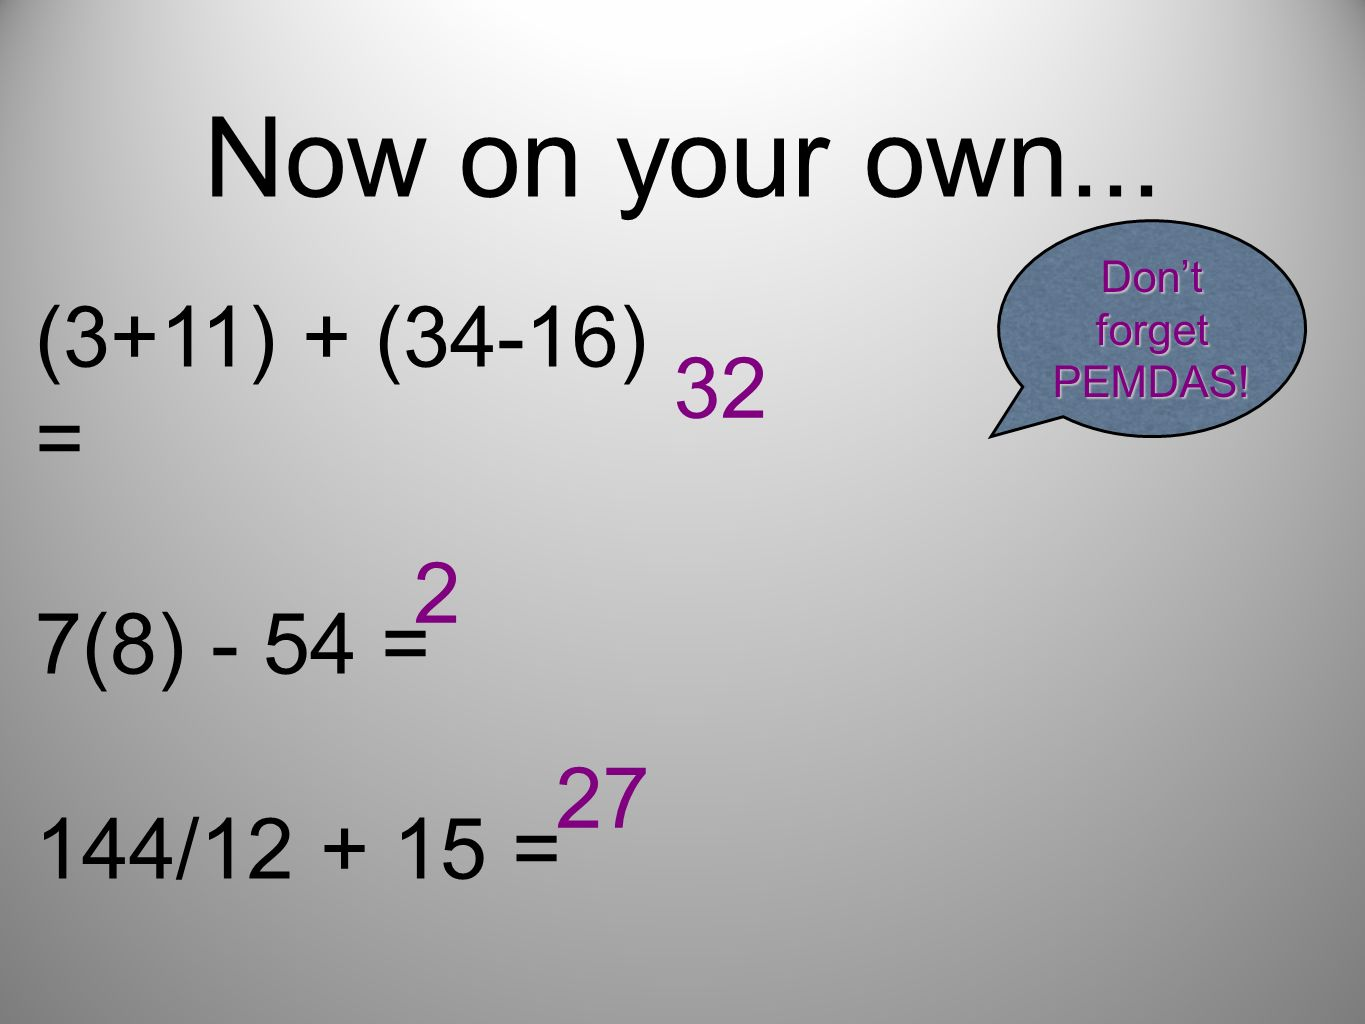 Now on your own... (3+11) + (34-16) = 32 7(8) - 54 = 2 144/ =